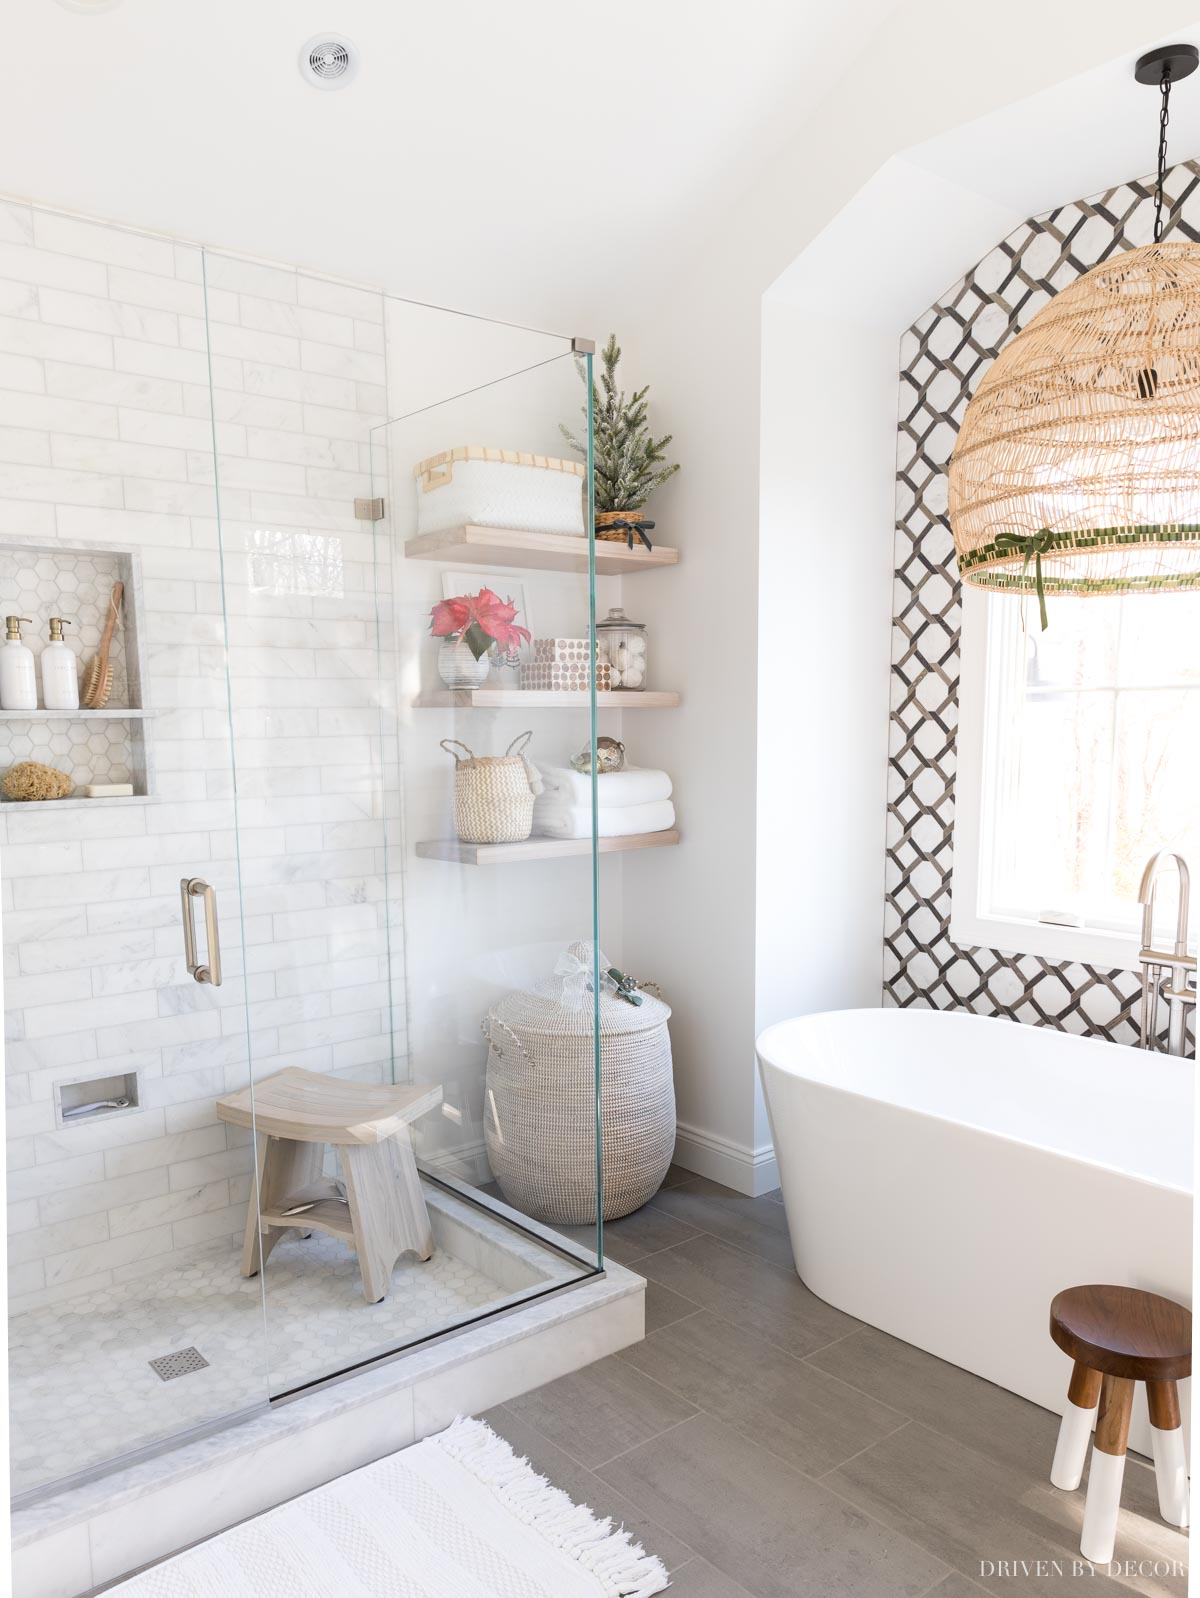 Love that gorgeous tile on the wall in this master bathroom! Great master bathroom remodel idea!